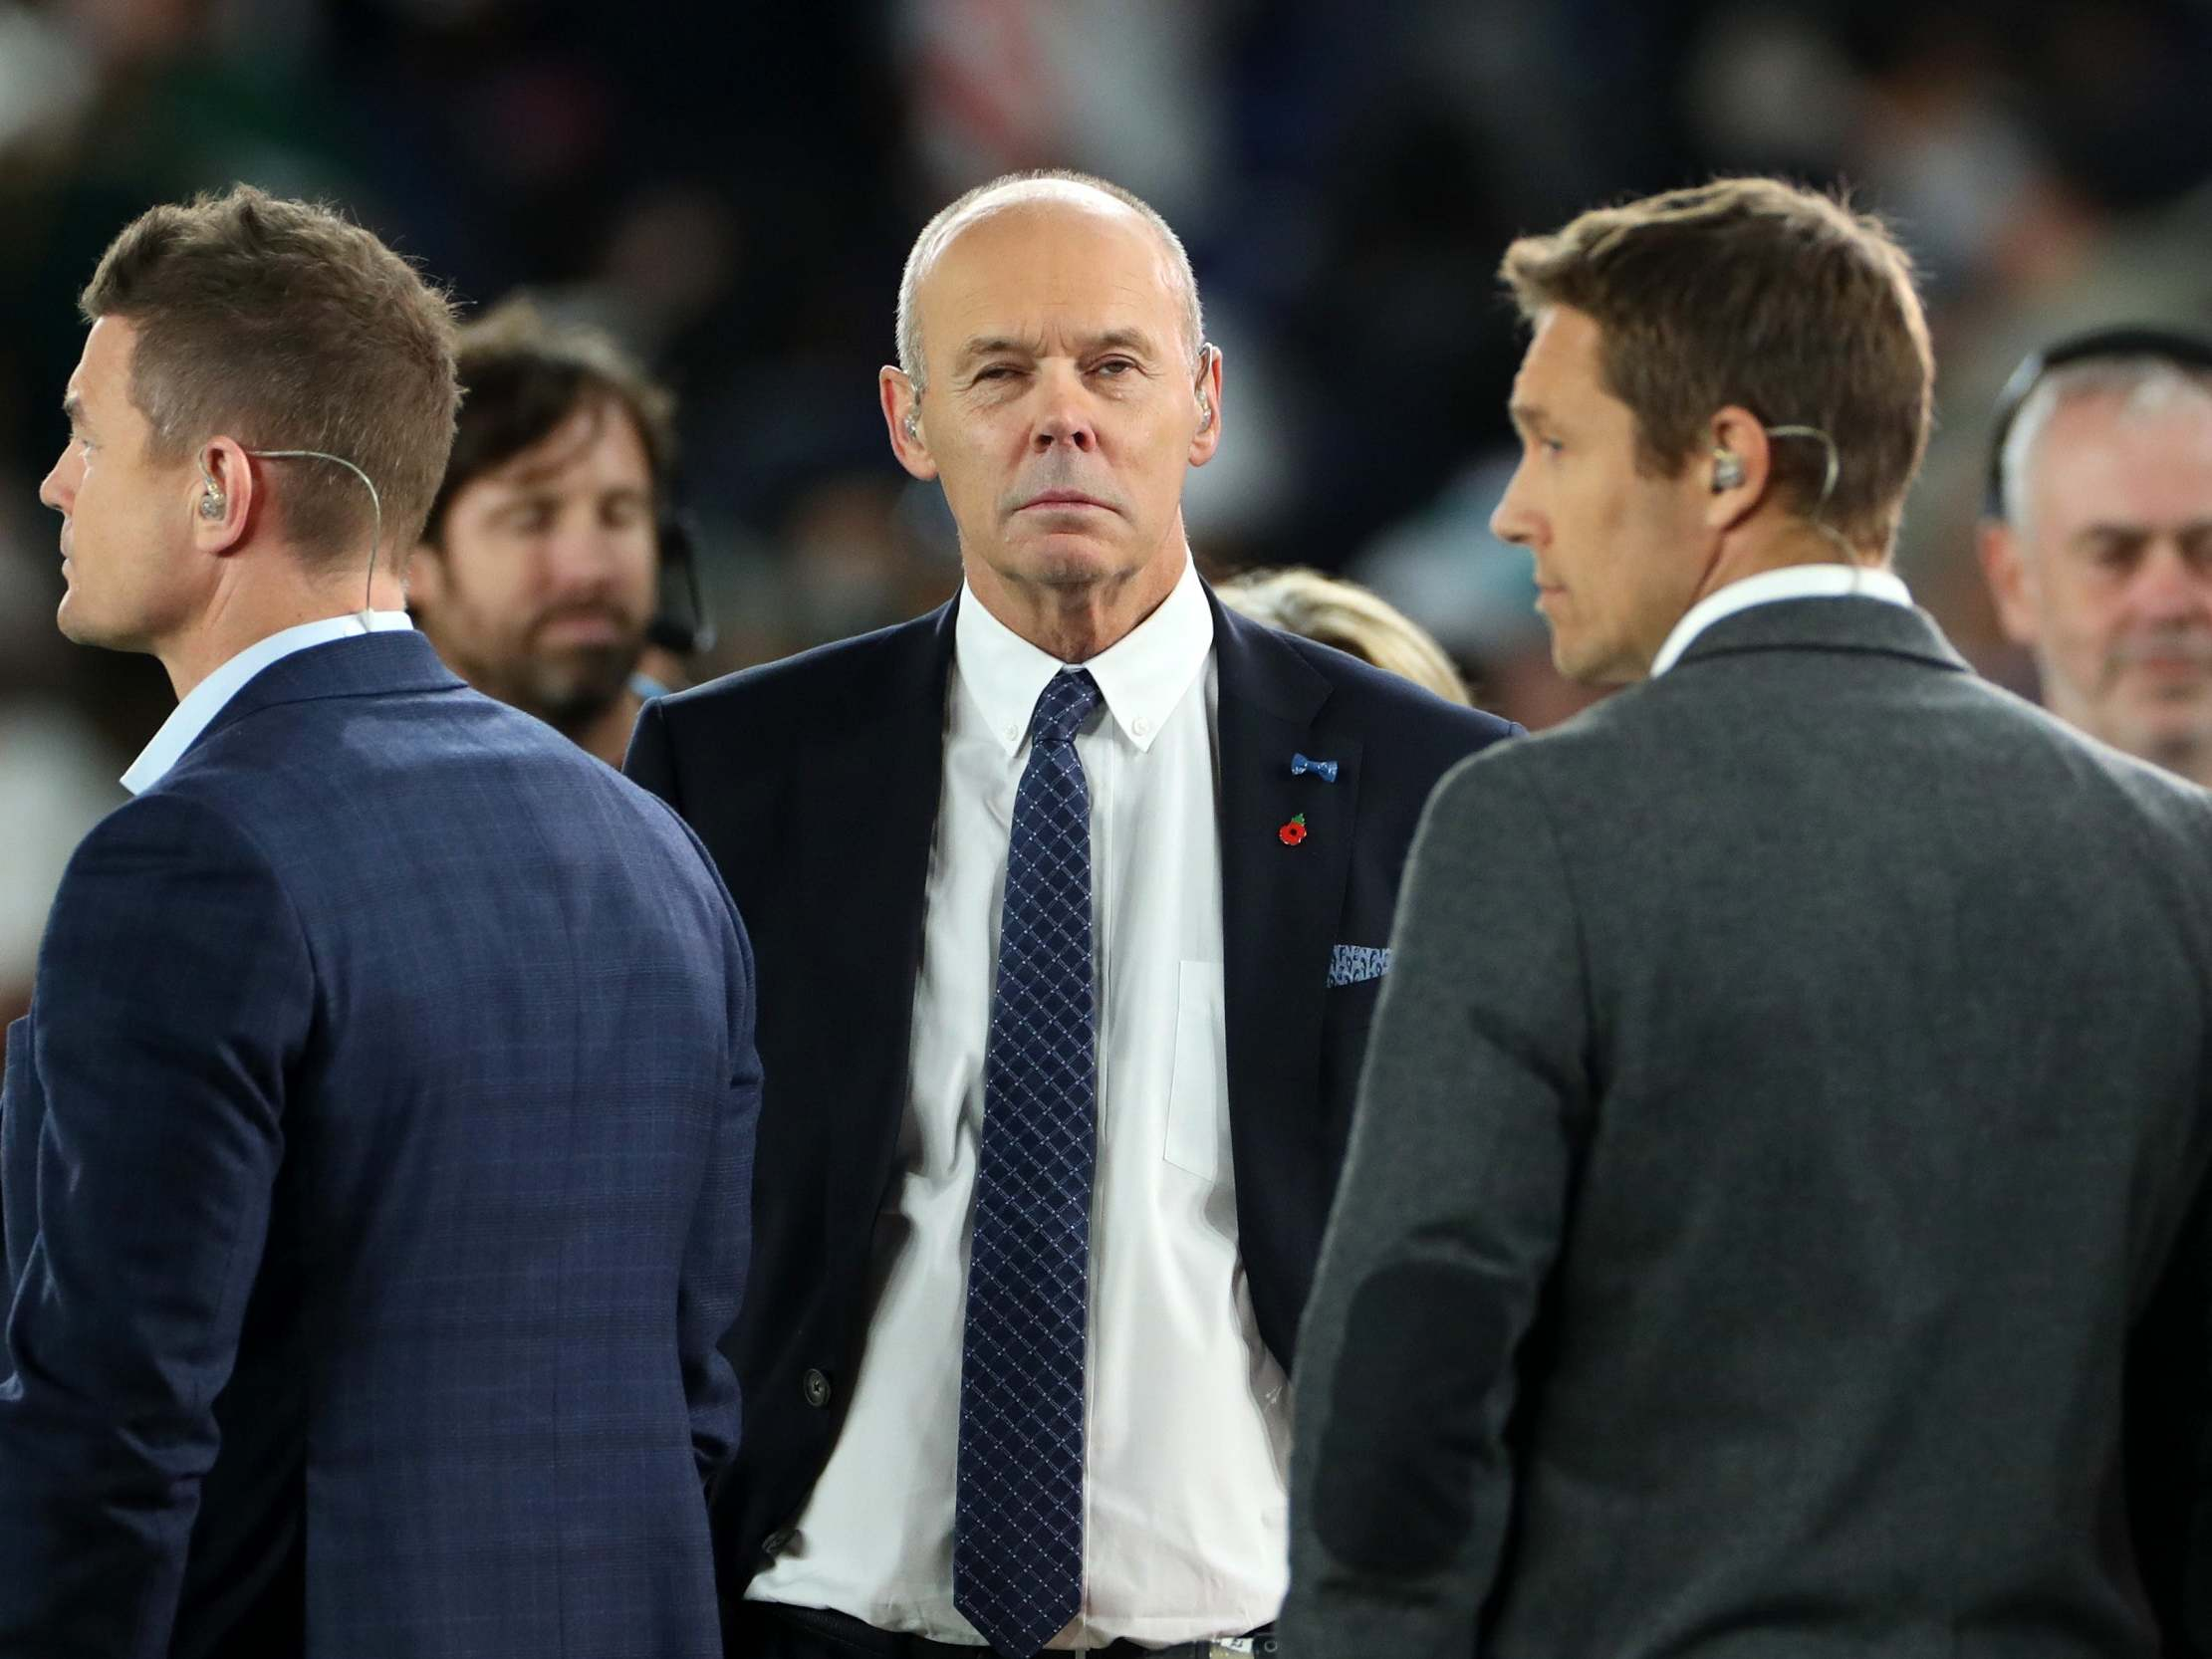 Clive Woodward compares 2003 Rugby World Cup winners to current England team and explains why his side were better